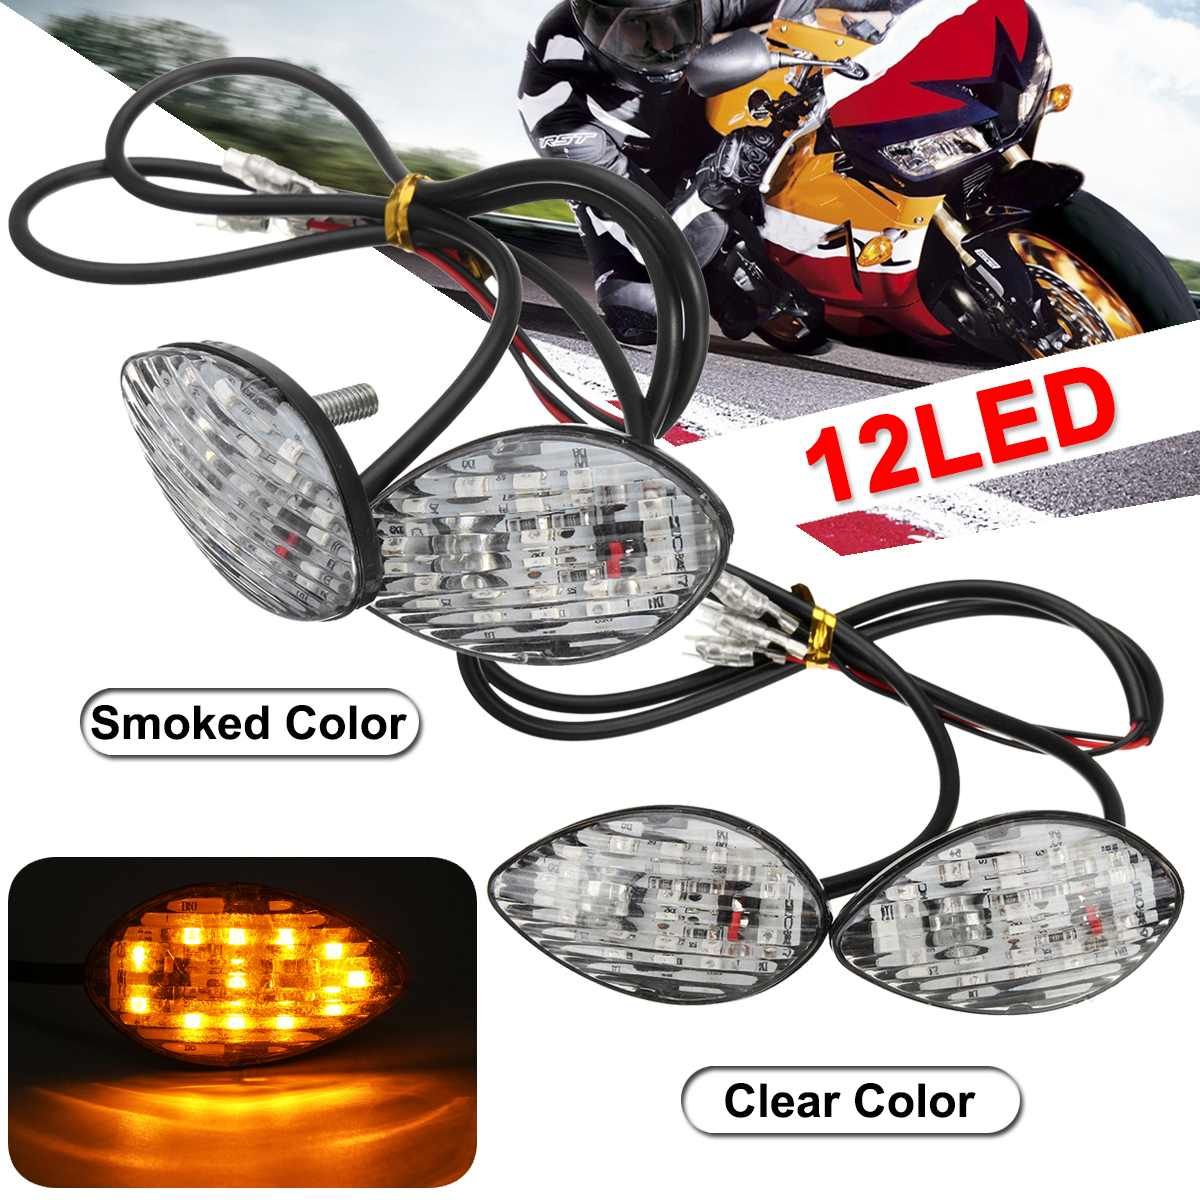 Pair Motorcycle Turn Signal Light Blinker Indicator Lamps For Honda CBR 600RR 1000RR 600F4I 954